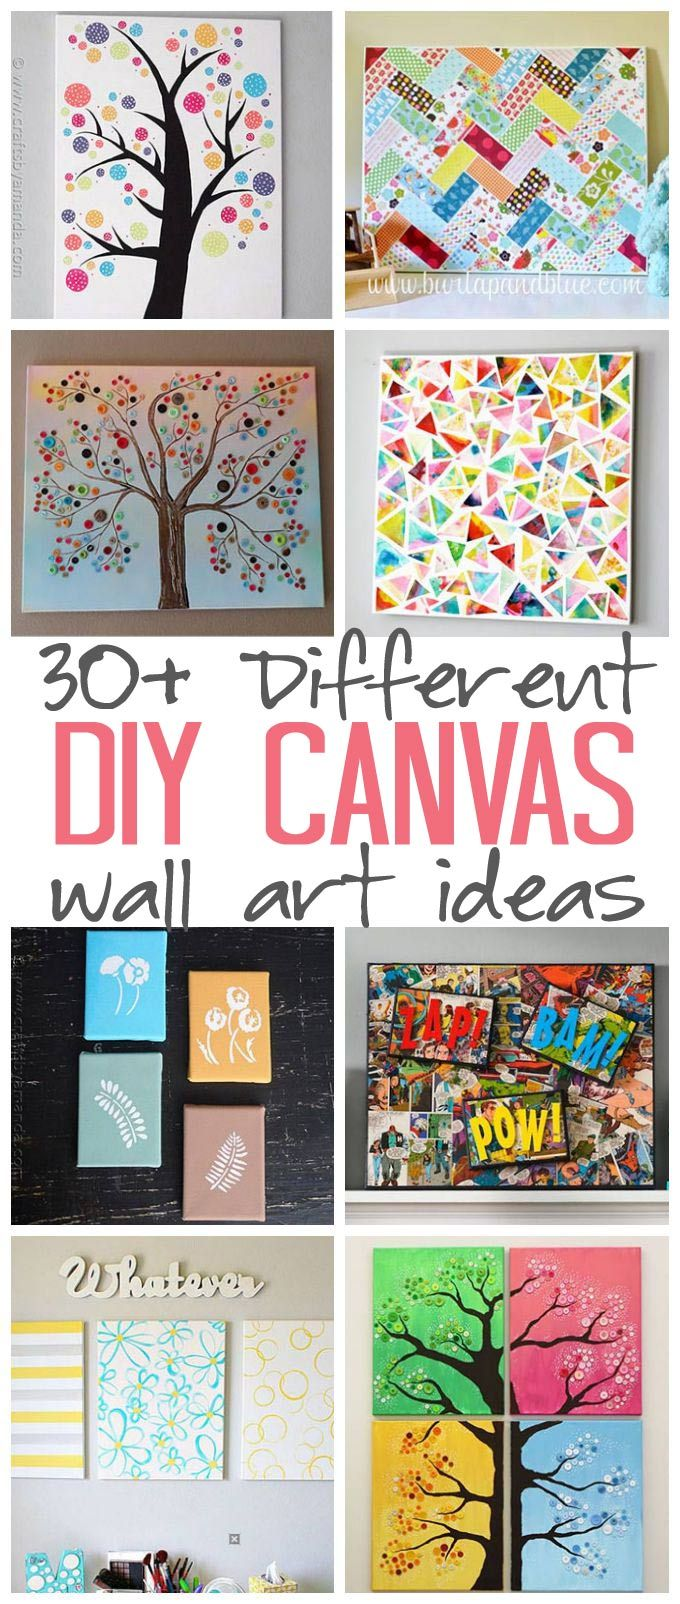 Diy Canvas Wall Art Ideas 30 Canvas Tutorials Diy Canvas Wall Art Diy Canvas Diy Canvas Art